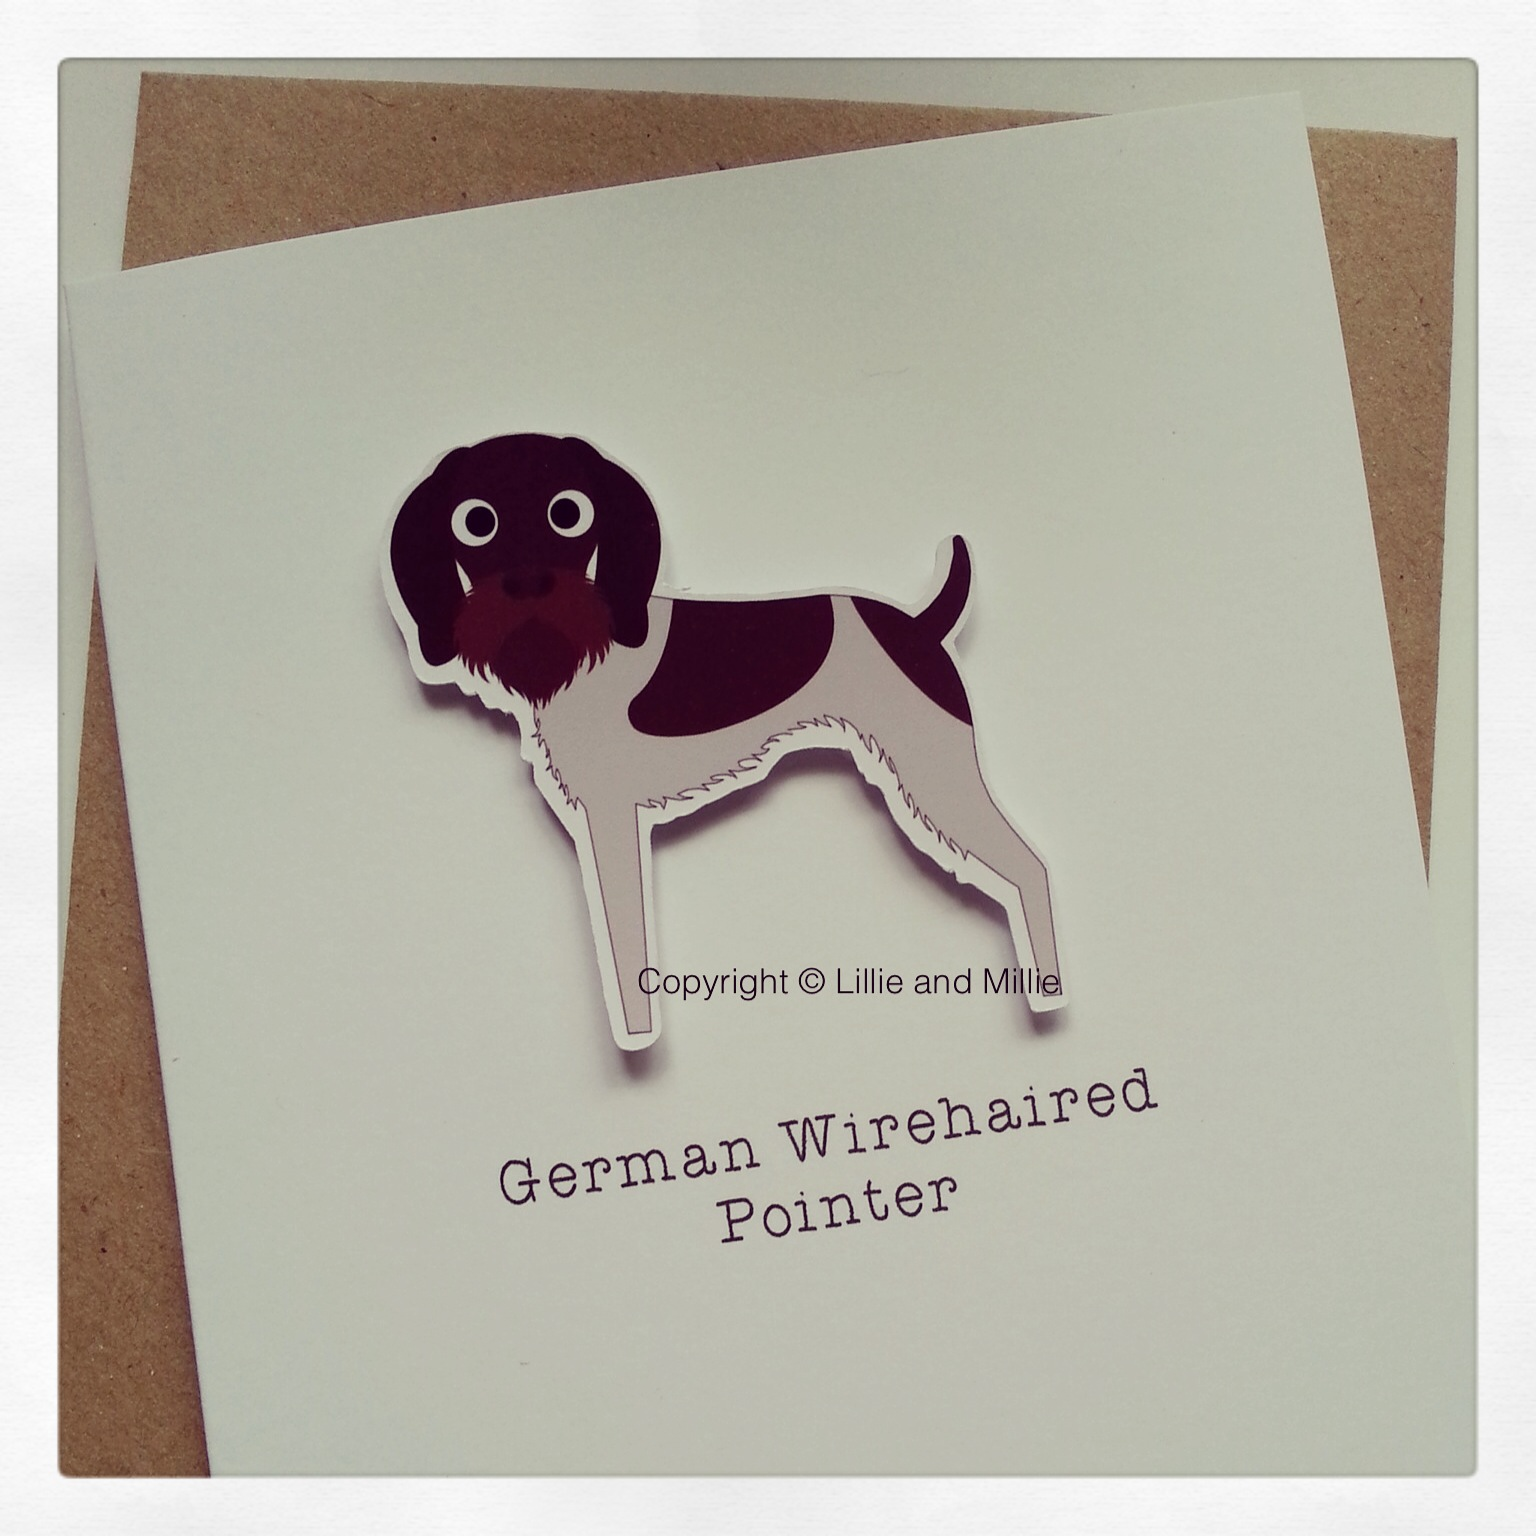 German Wirehaired Pointer Dog Greetings Card